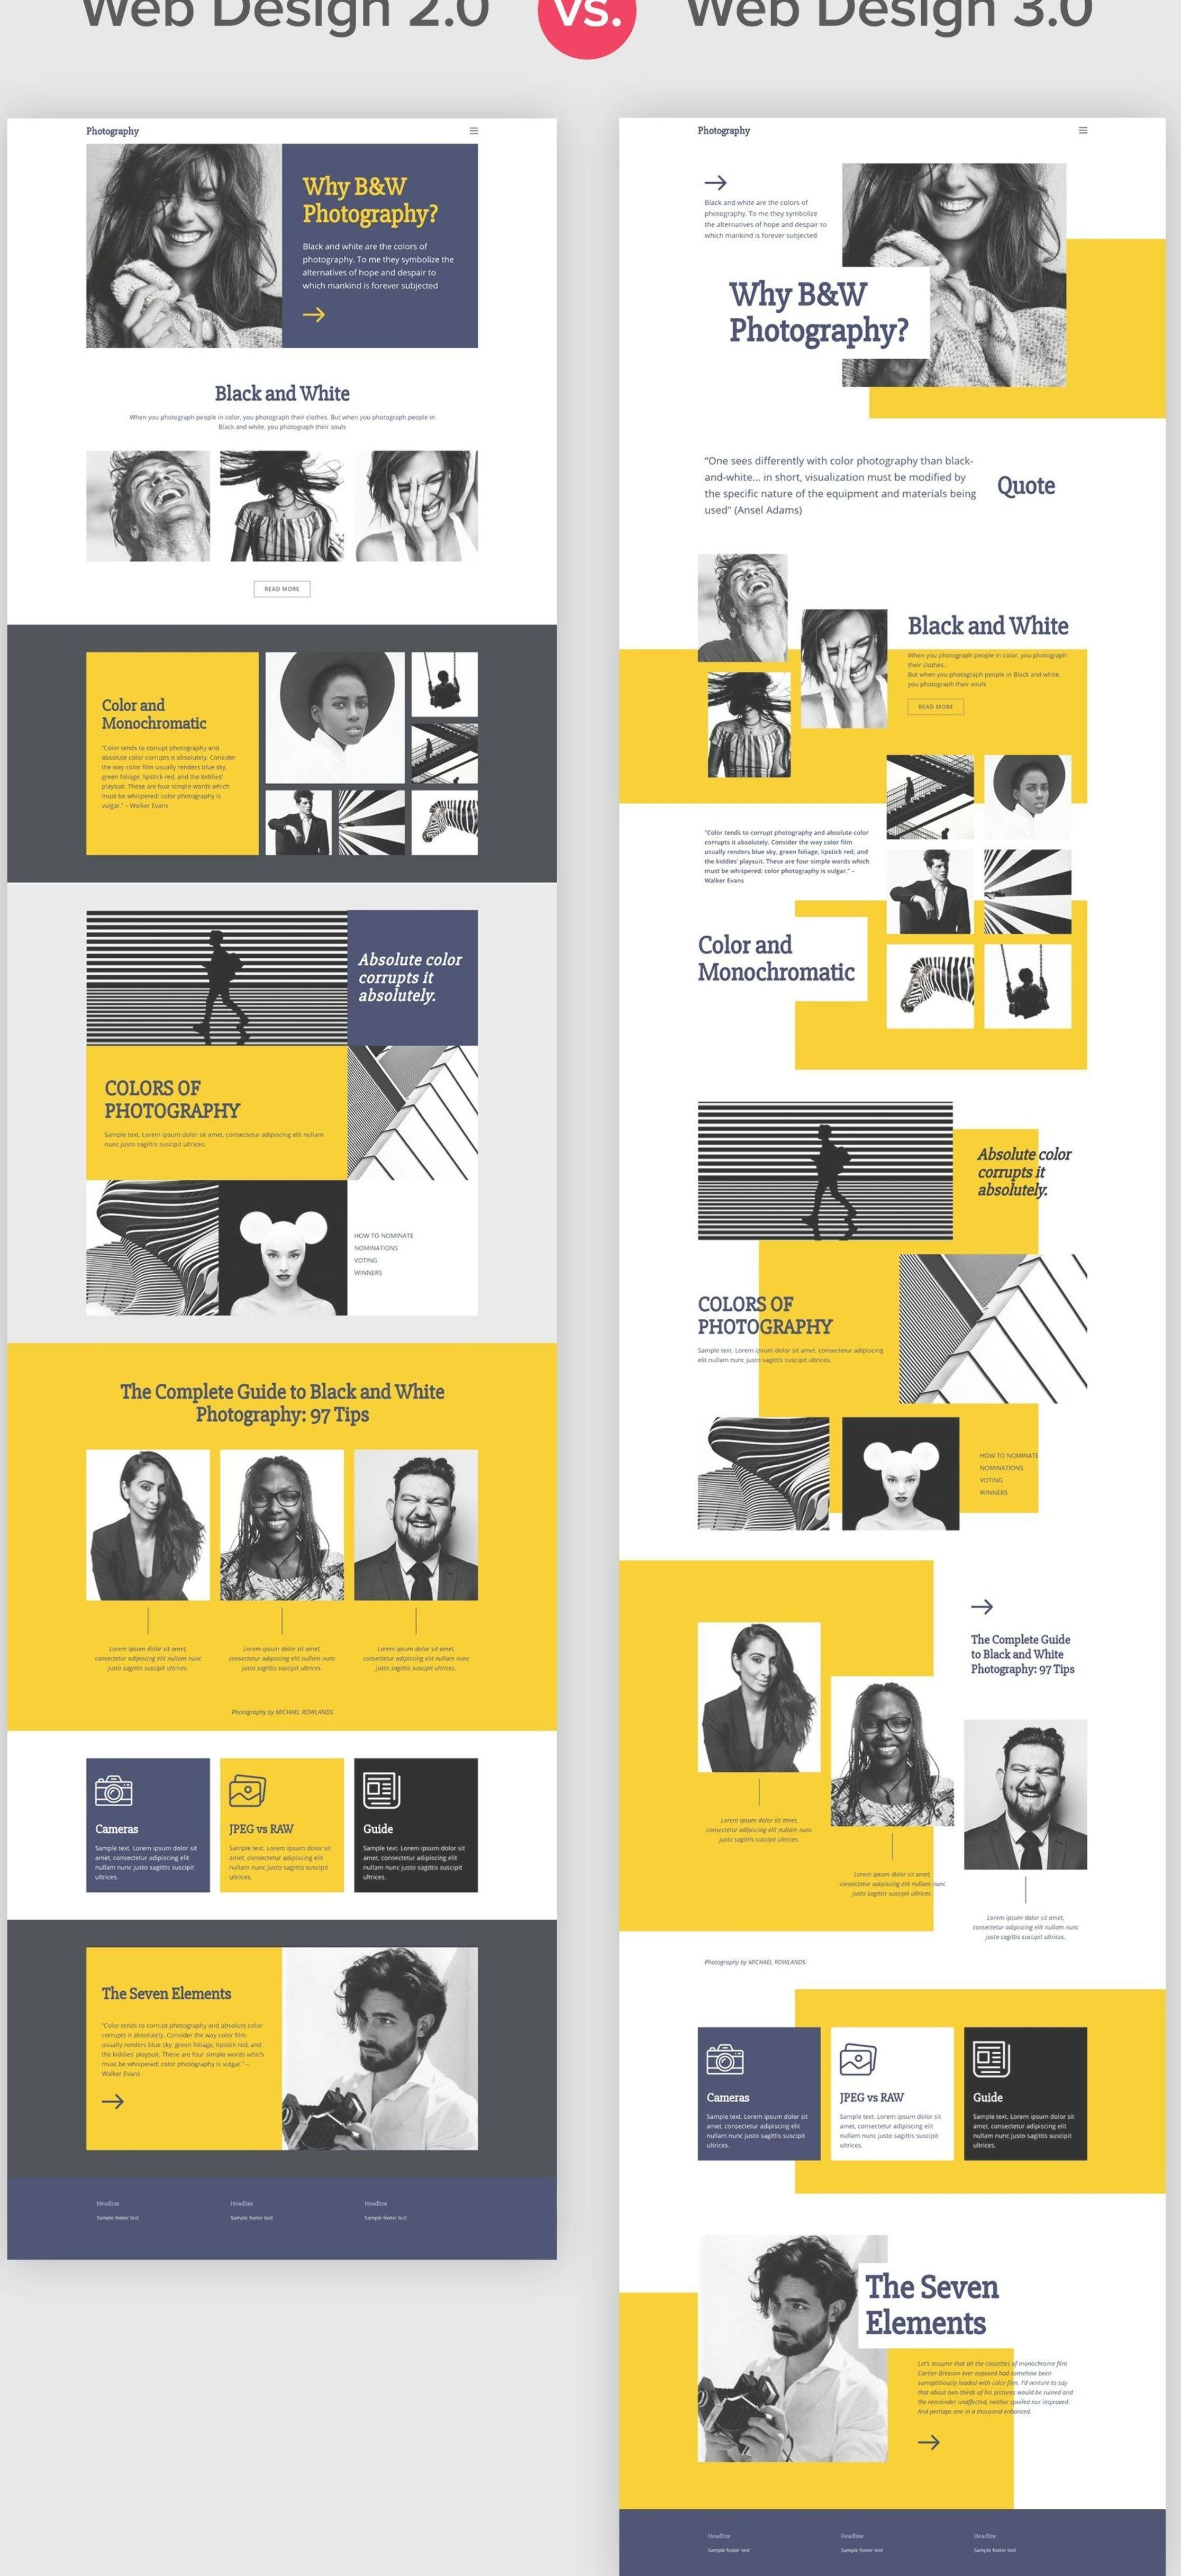 New Pages In Web Design 3 0 Differ With Free Positioning Element Overlapping White Space An Web Design Web Design Inspiration Portfolio Portfolio Web Design